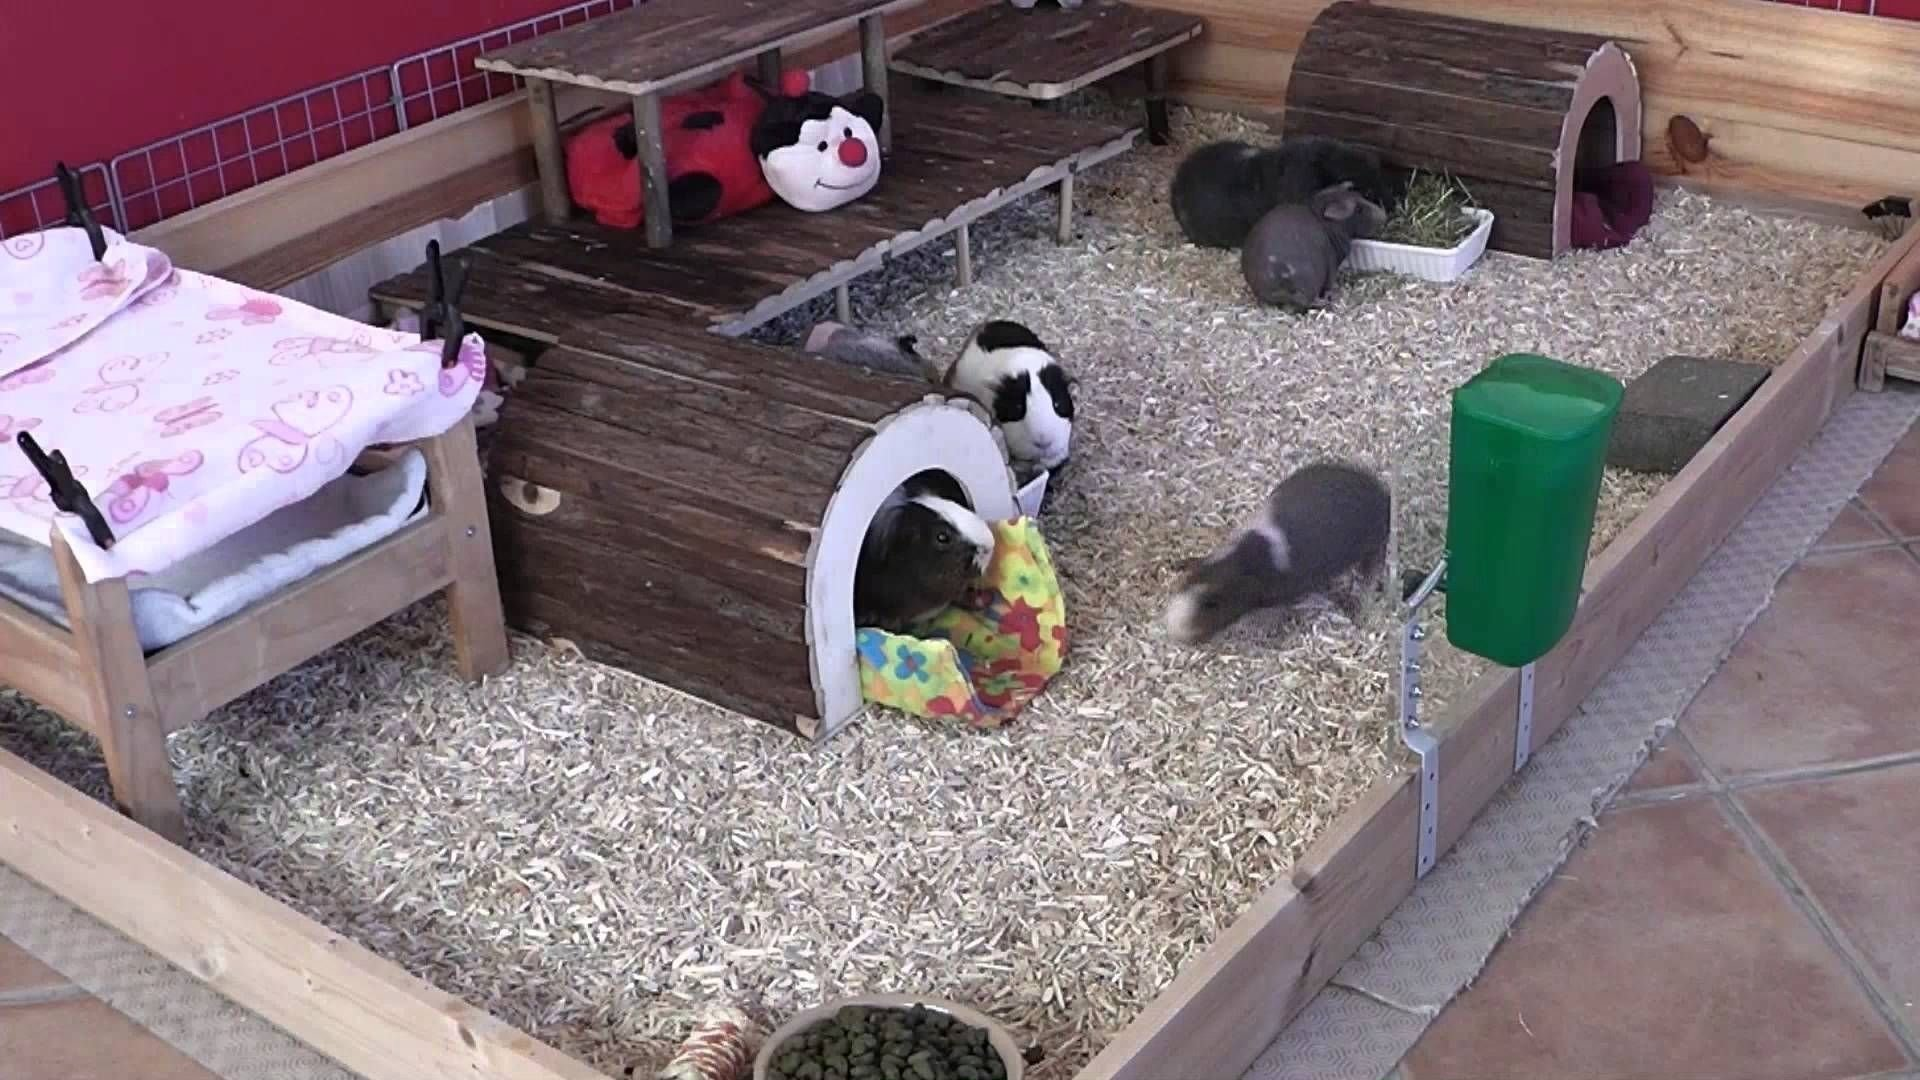 10 Ideal Homemade Guinea Pig Cage Ideas awesome ideas for guinea pig hutch and cages diy guinea pig cage 2020